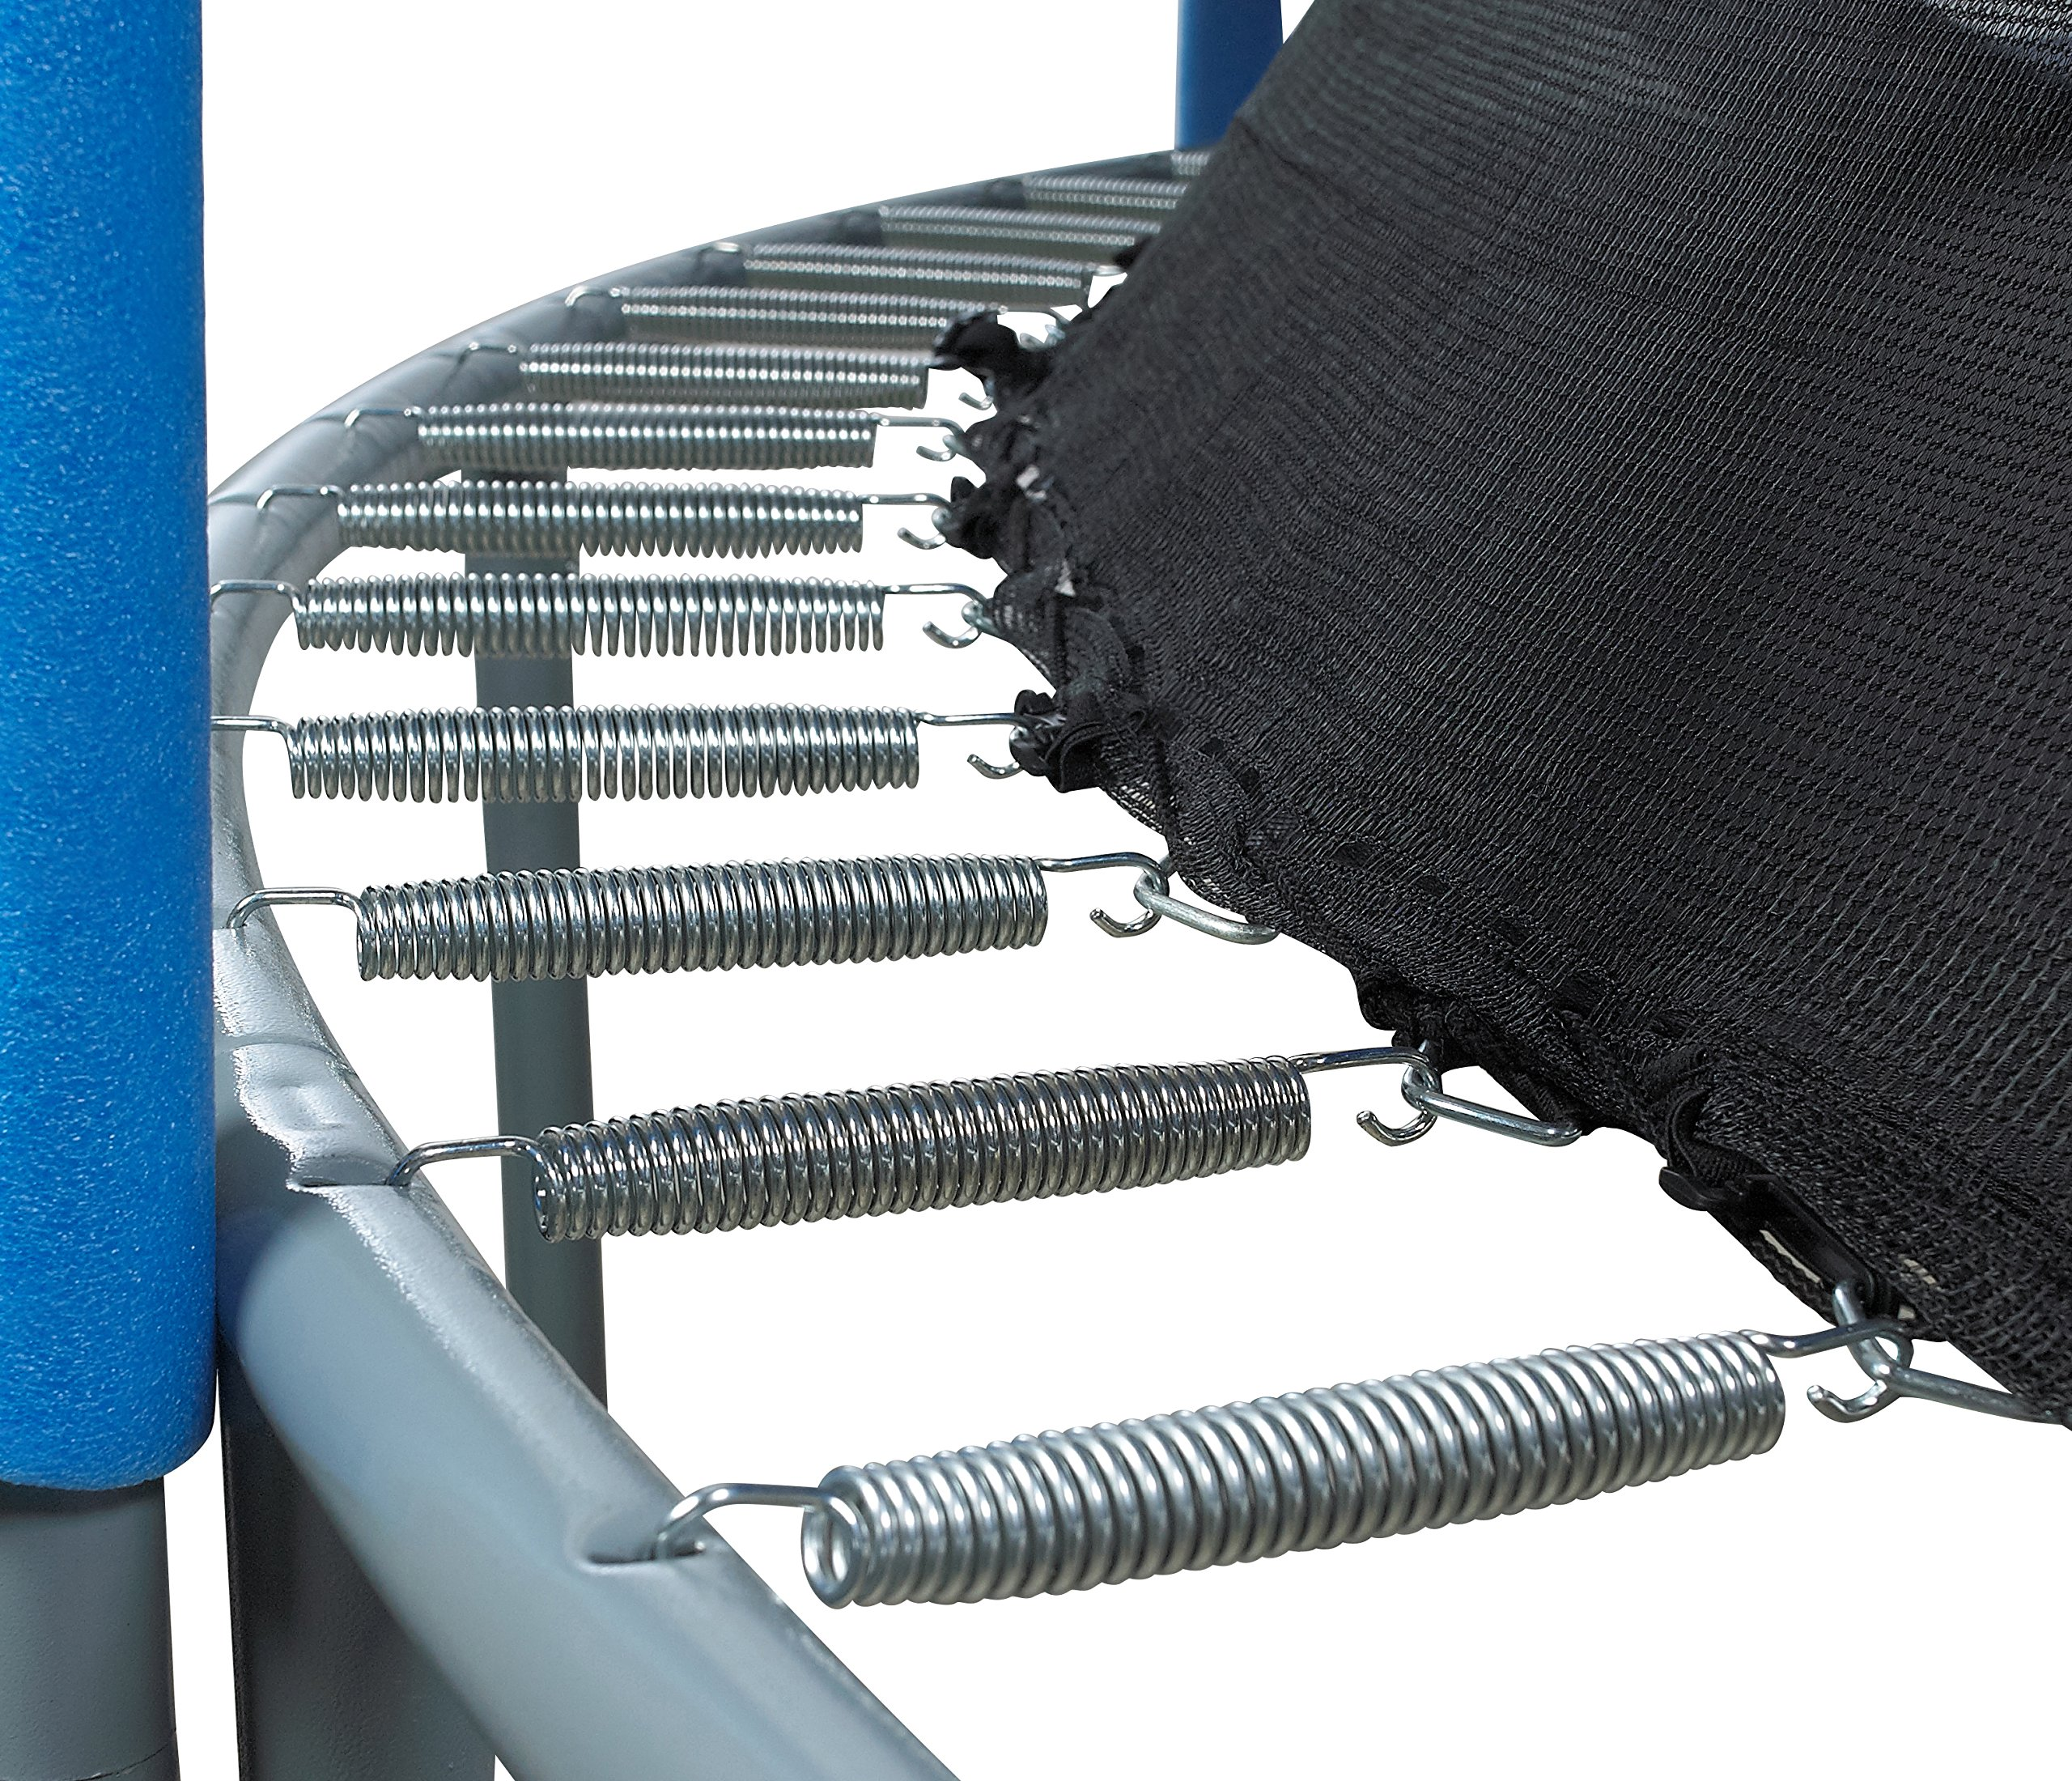 SKYTRIC Trampoline with Top Ring Enclosure System Equipped with The Easy Assemble Feature, 15-Feet by SKYTRIC (Image #4)